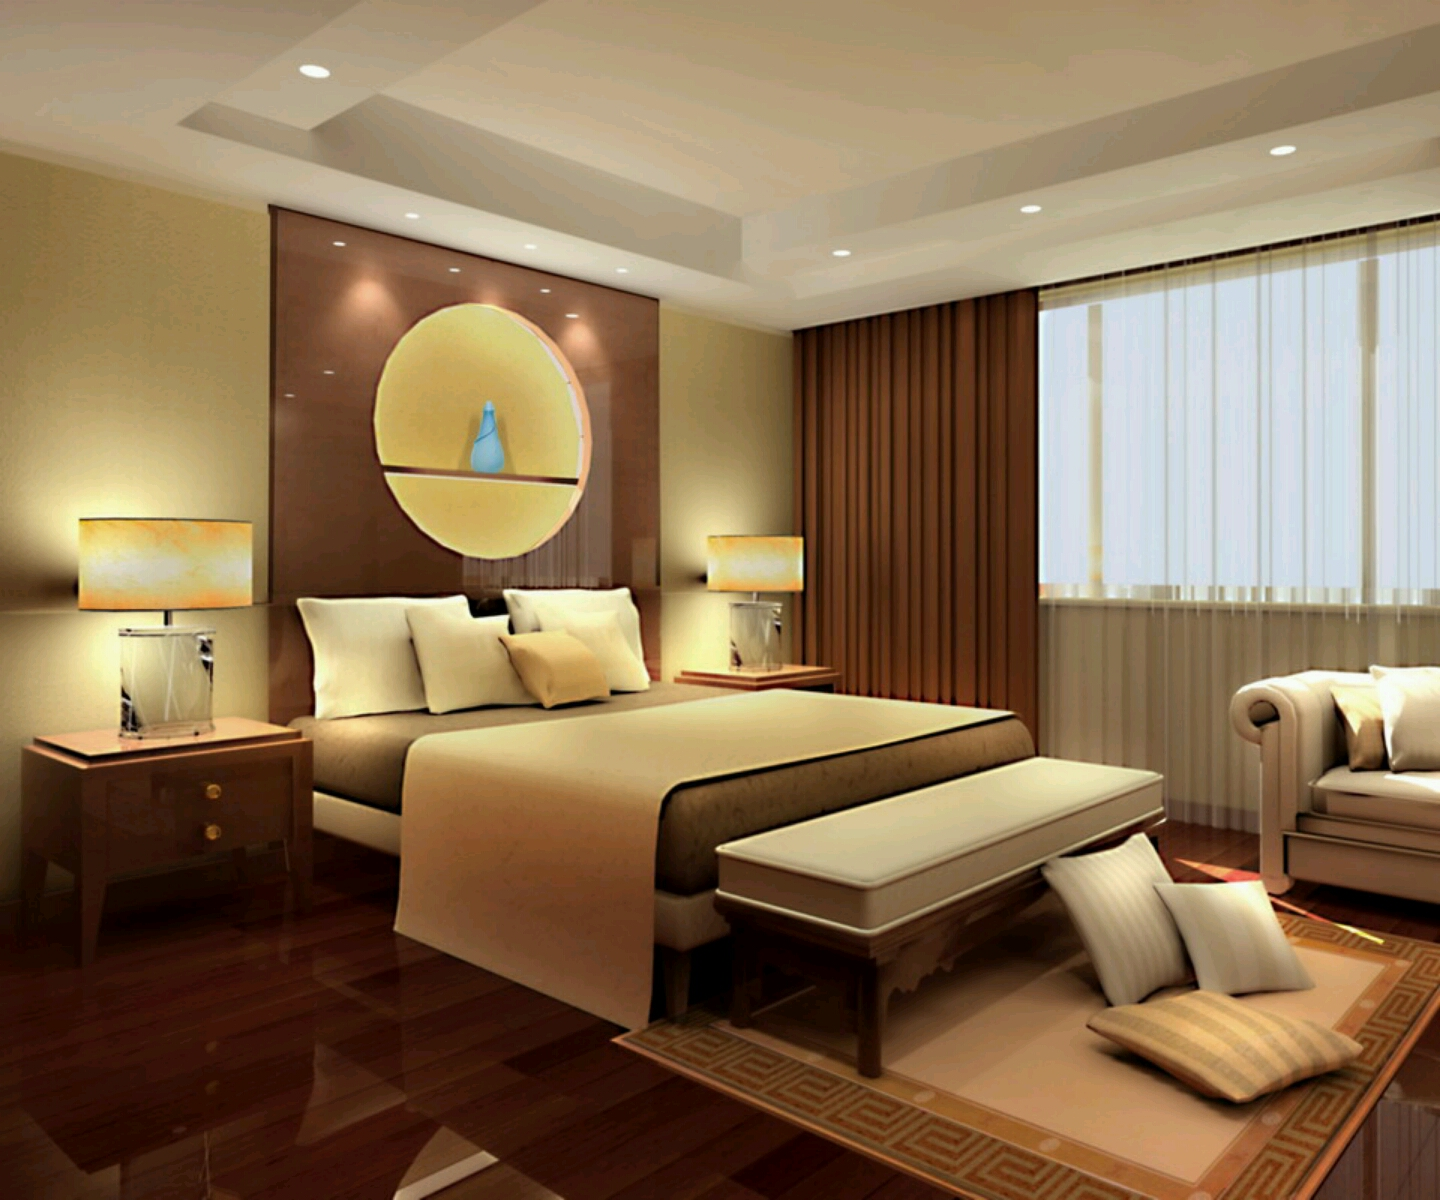 New home designs latest modern beautiful bedrooms for Interior designs for bedrooms ideas